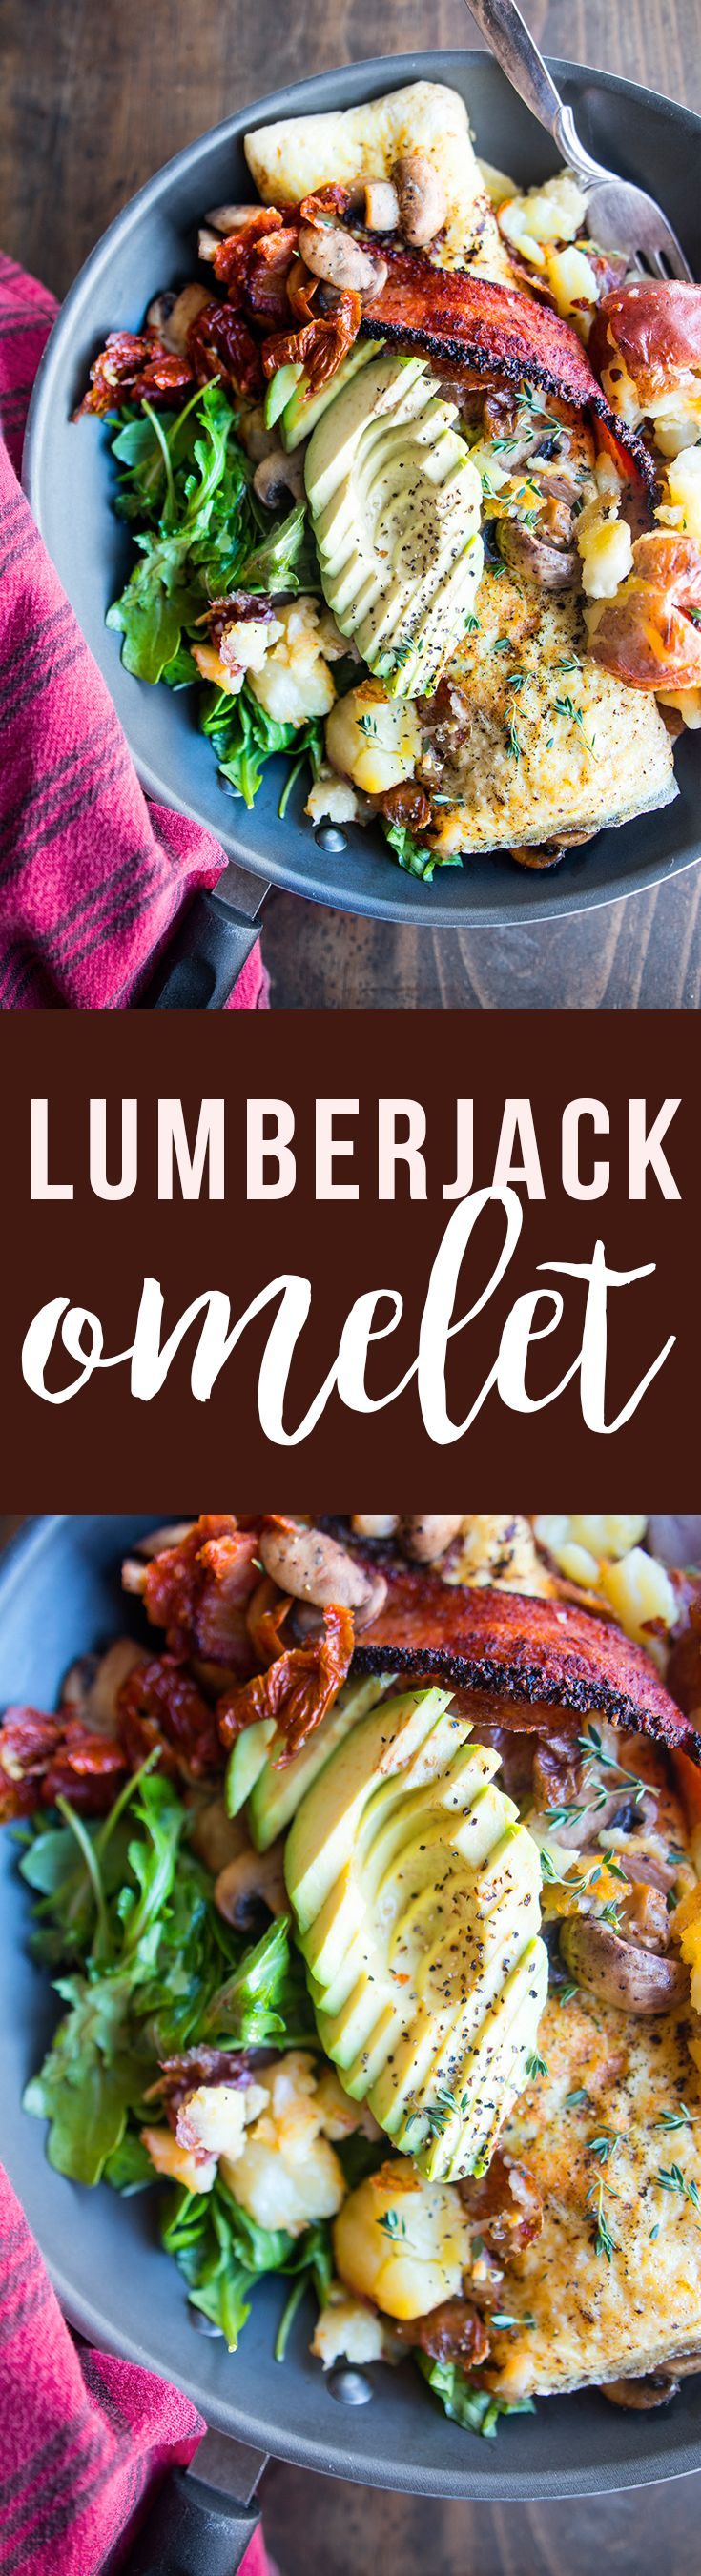 Lumberjack Omelet (and How to Decode Your Egg Carton) | Fresh Planet Flavor via @freshplanetflvr